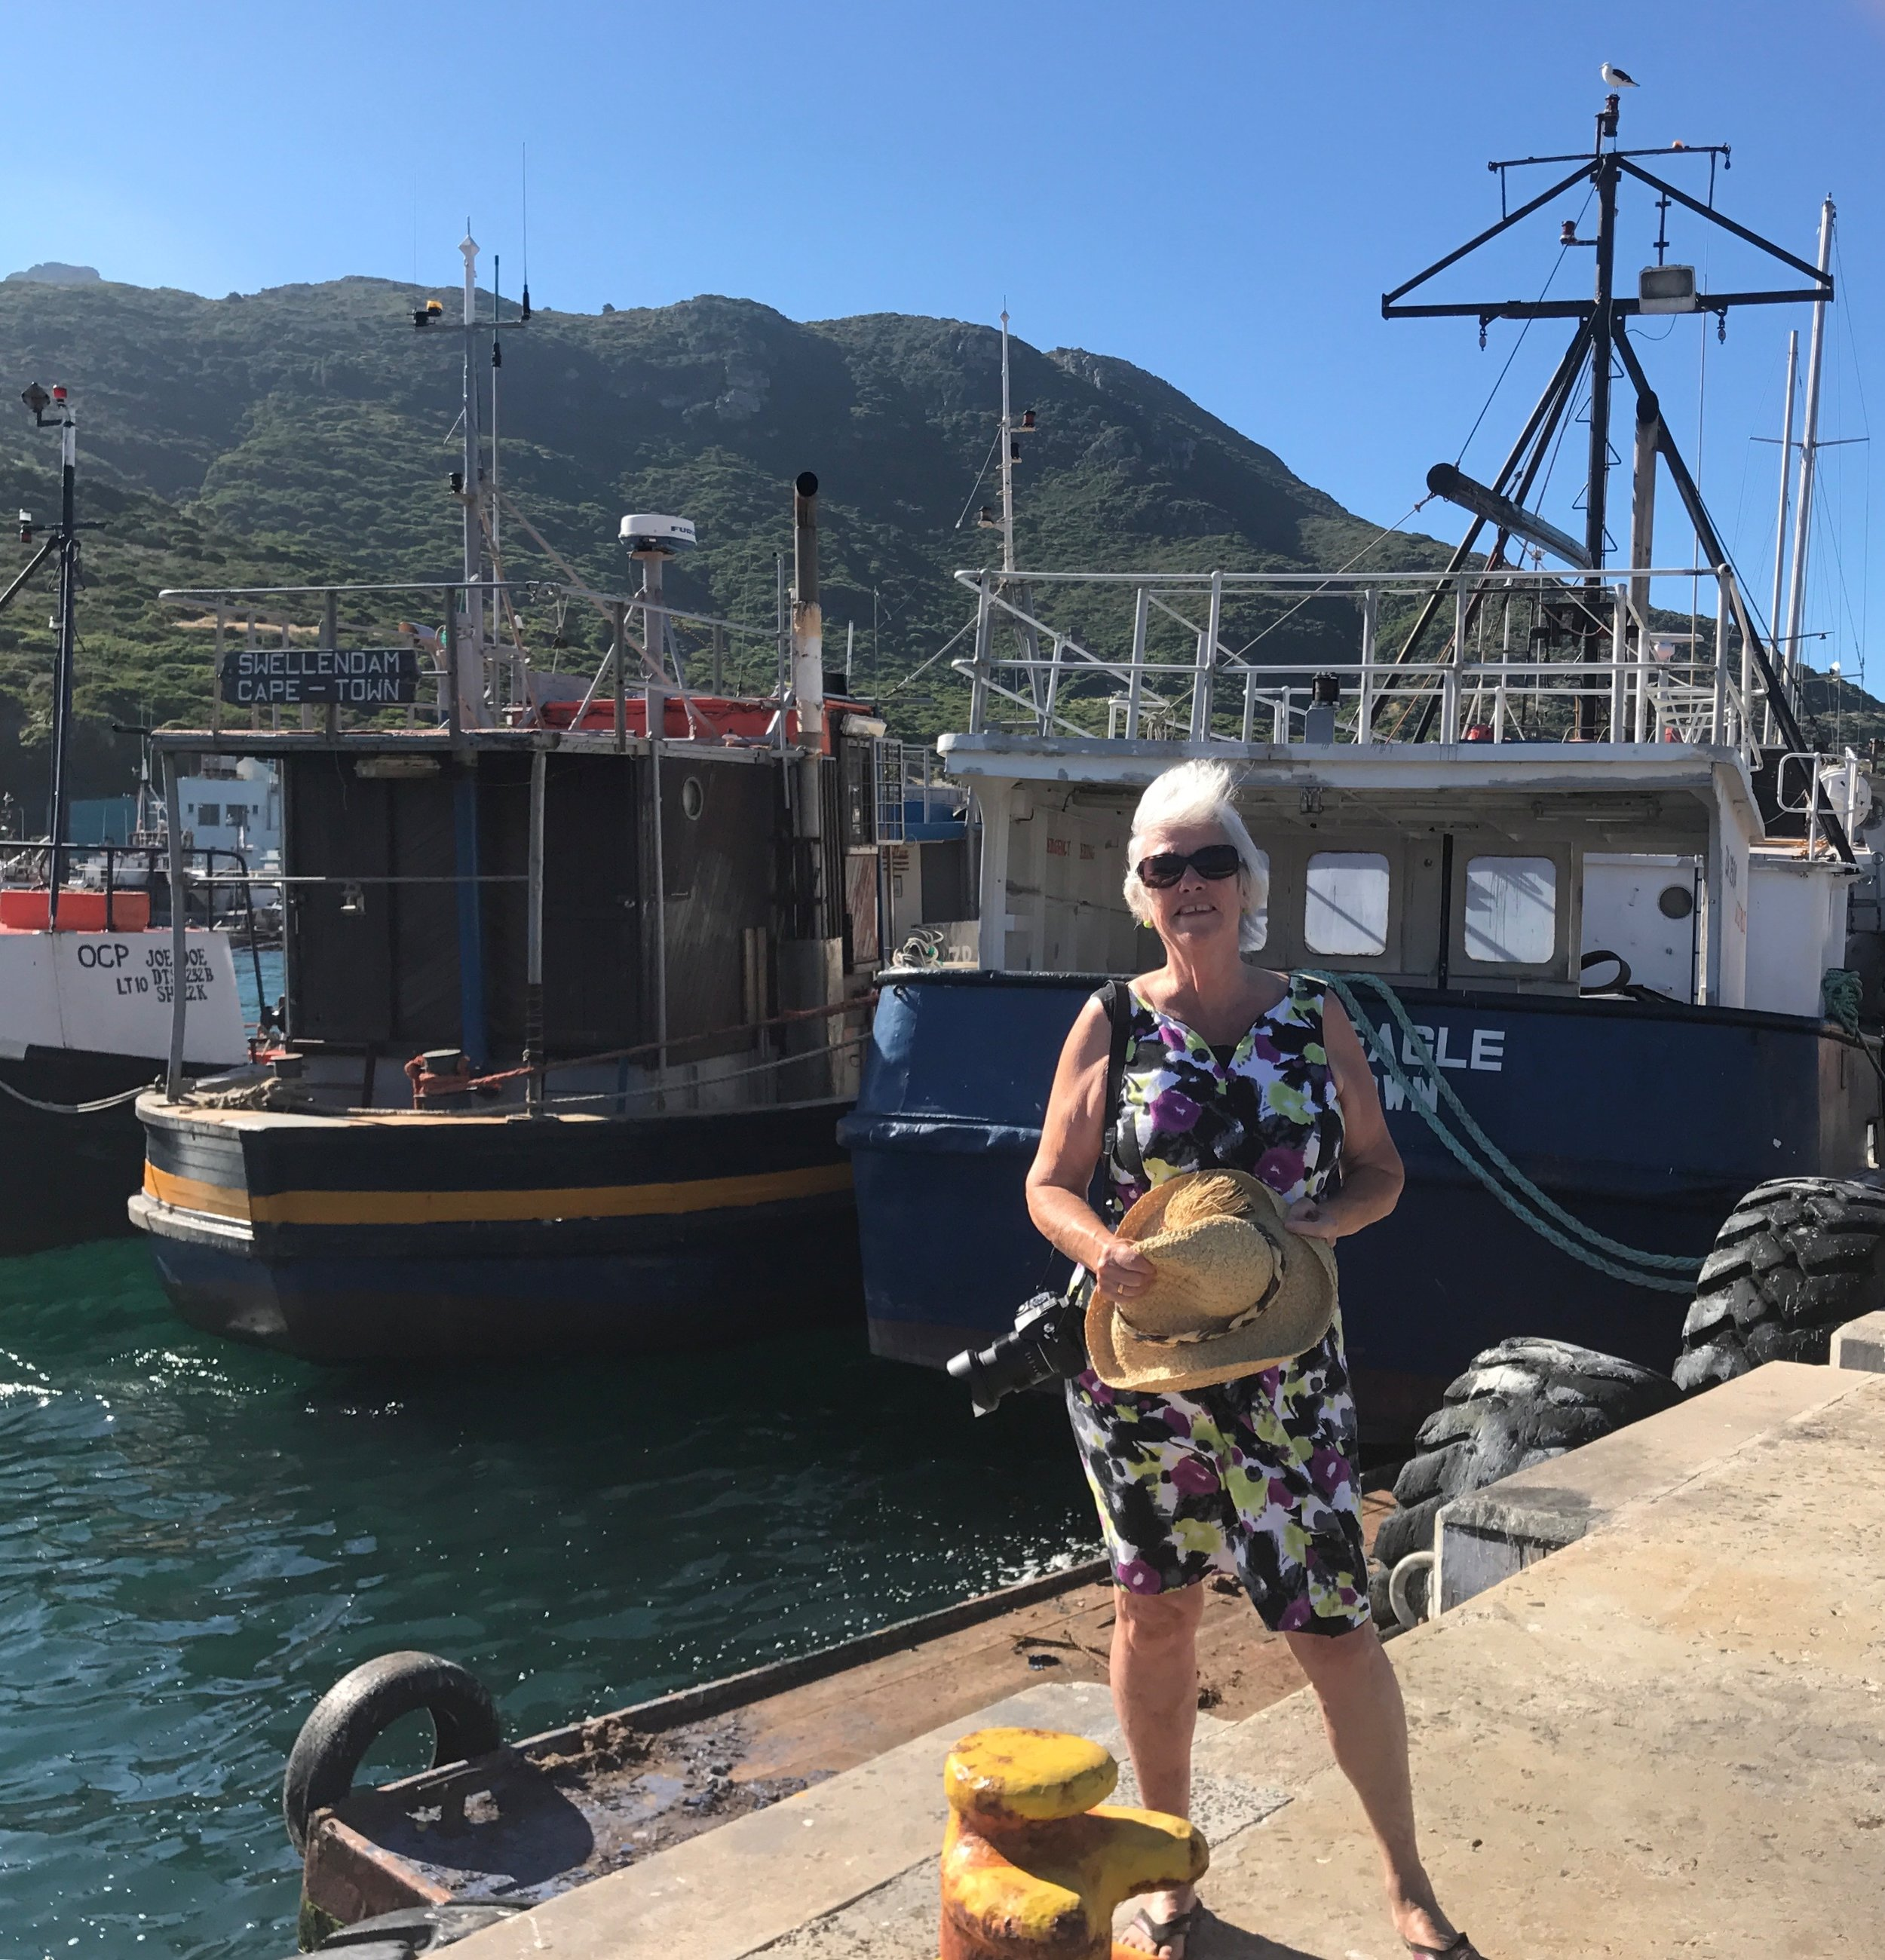 On the dock in Hout Bay